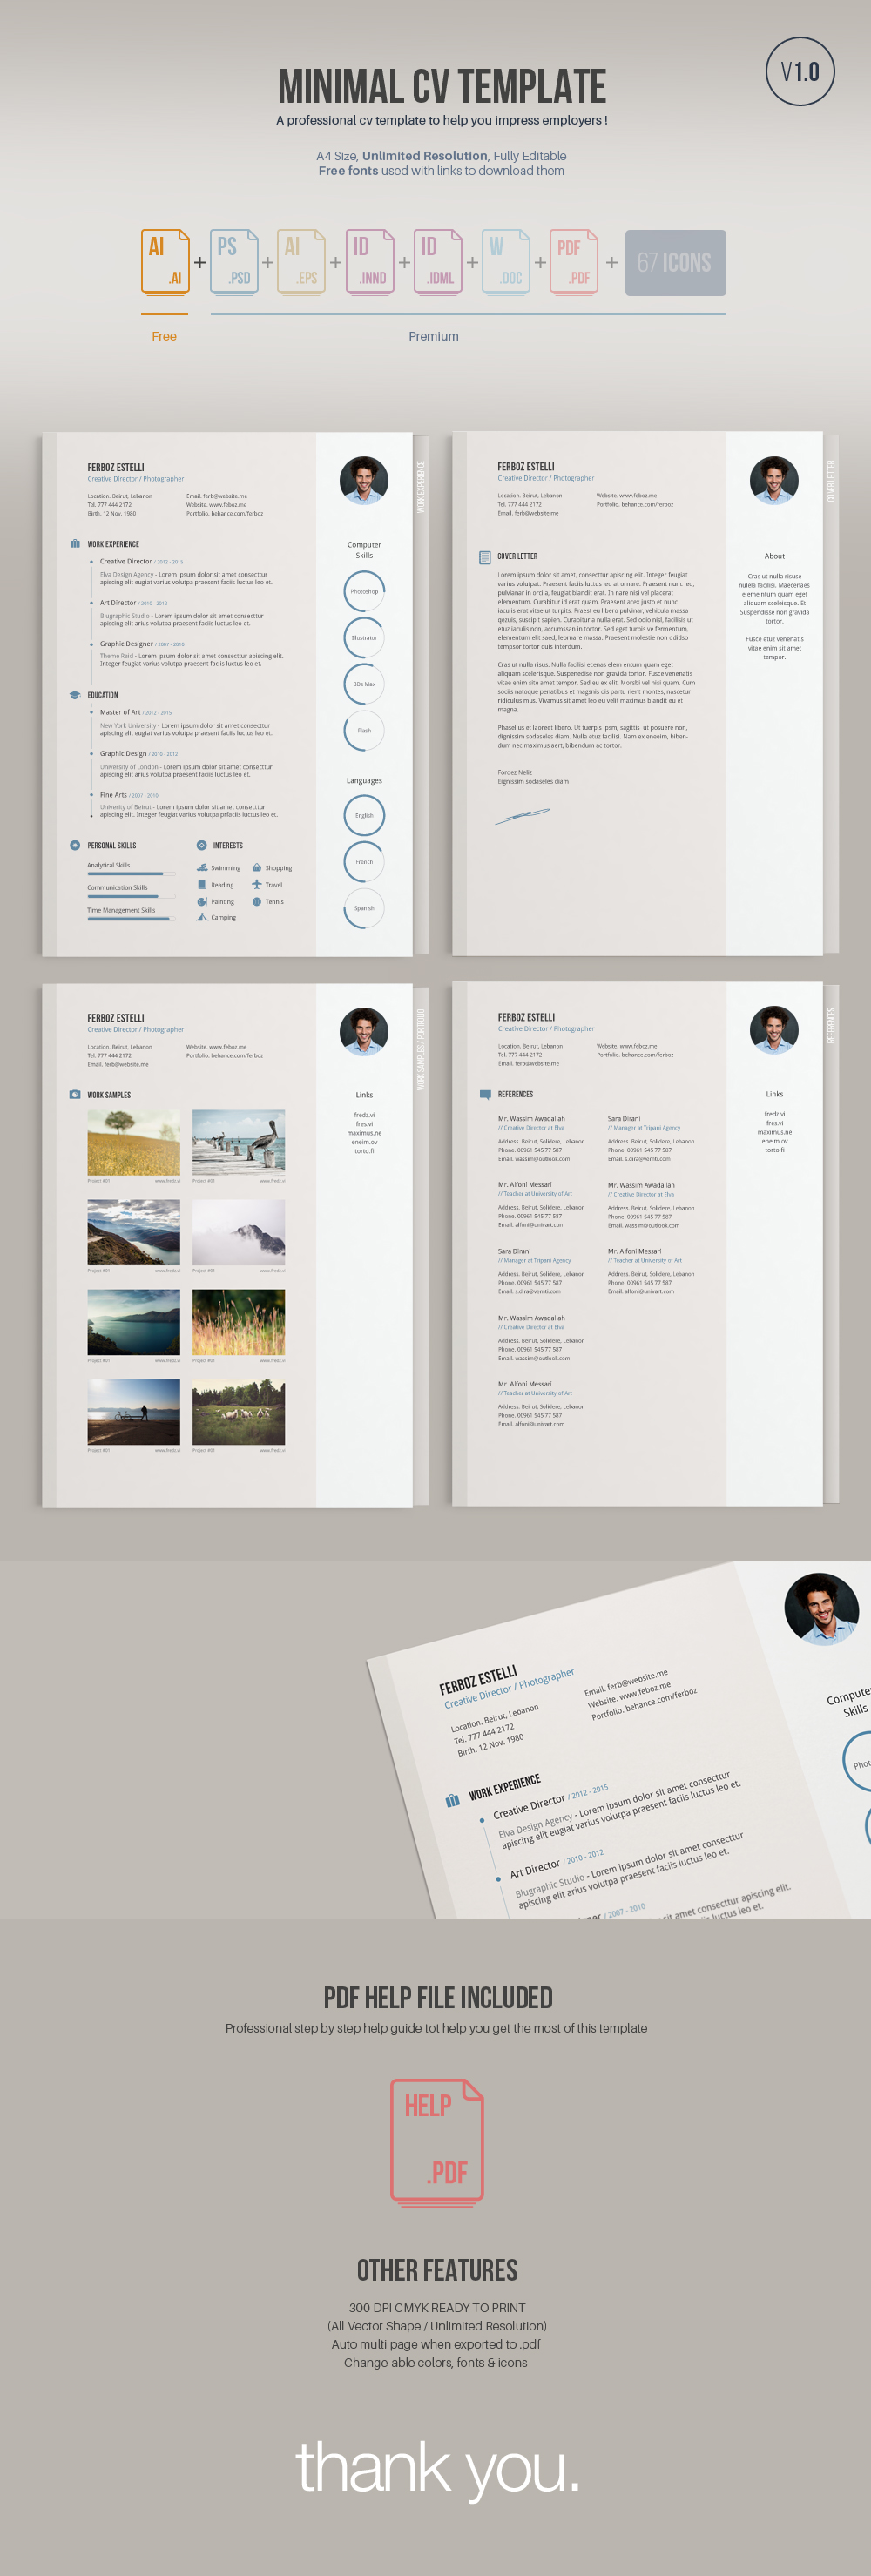 Download 29 Simple, Clean and Minimal Resume Templates - WiseStep